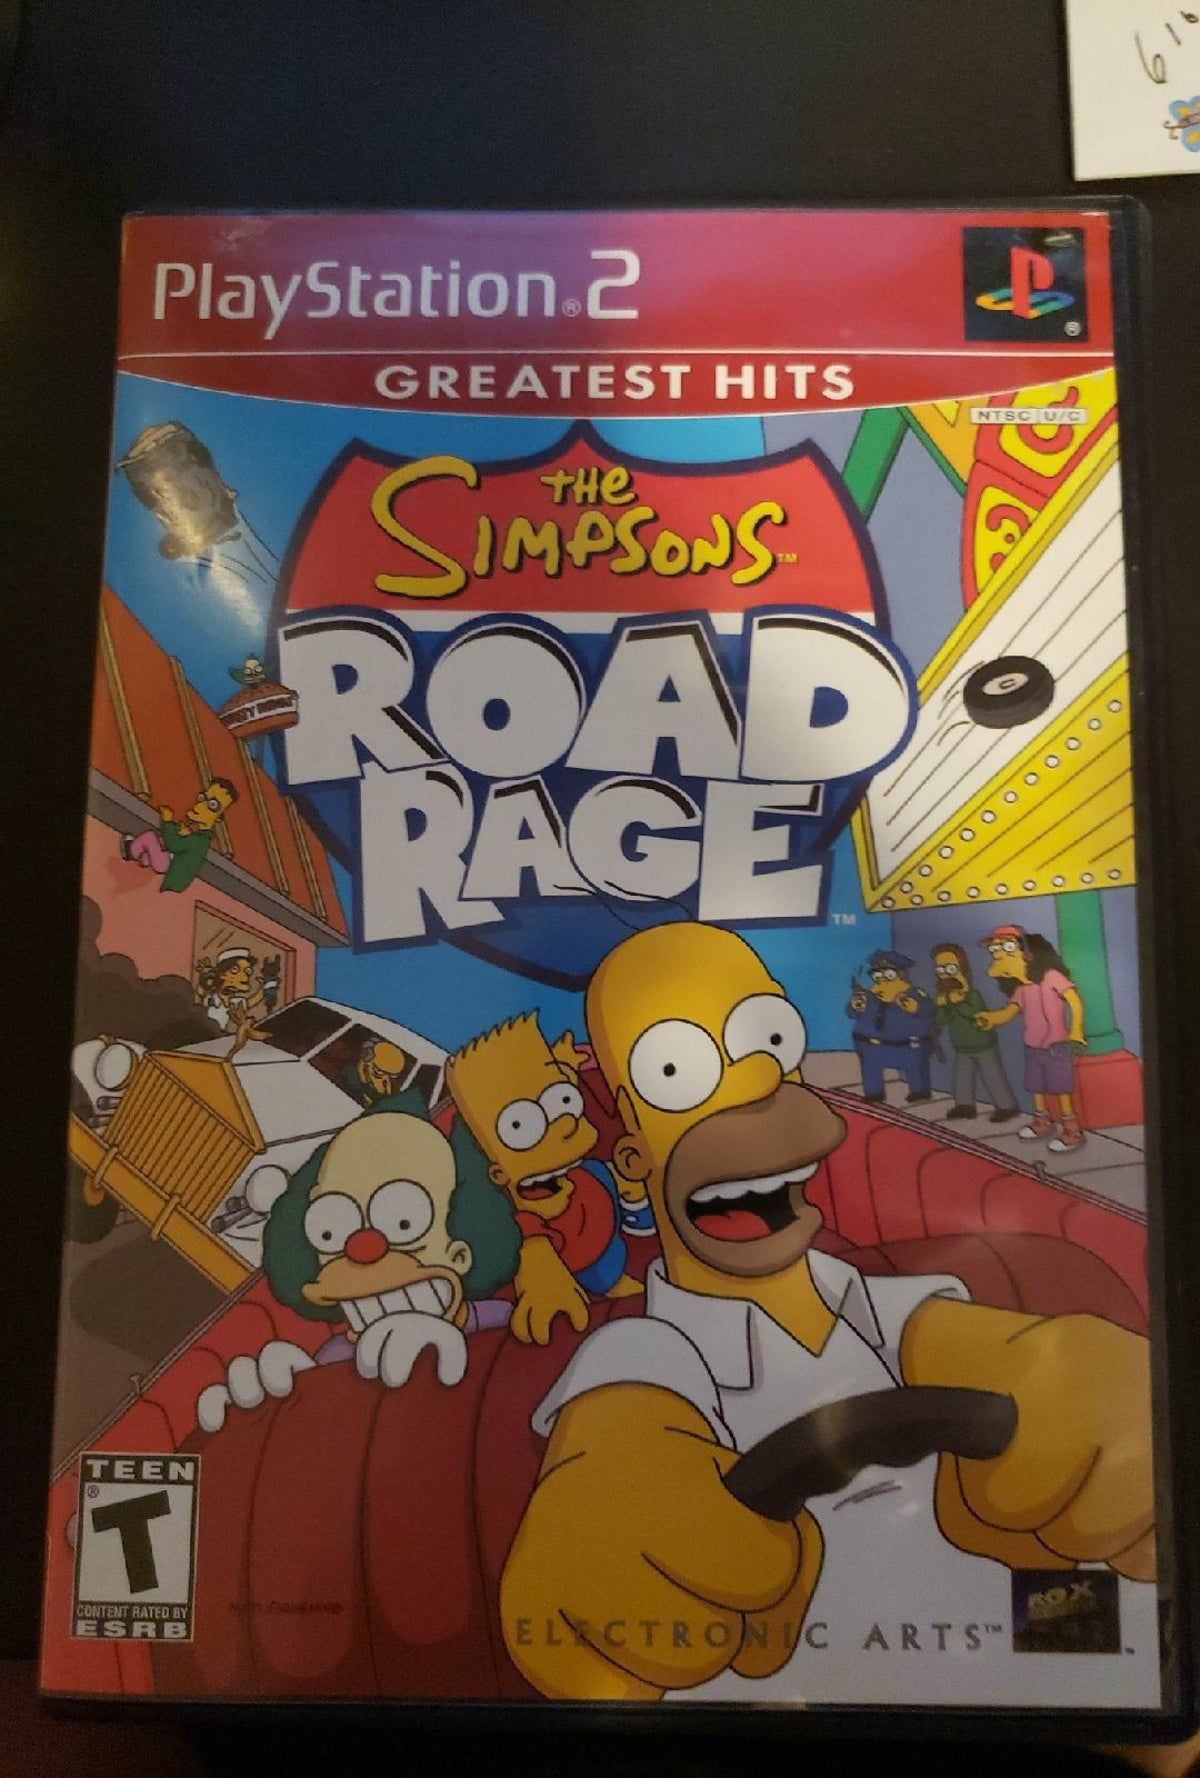 The Simpsons Road Rage PS2 in 2020 Road rage, The